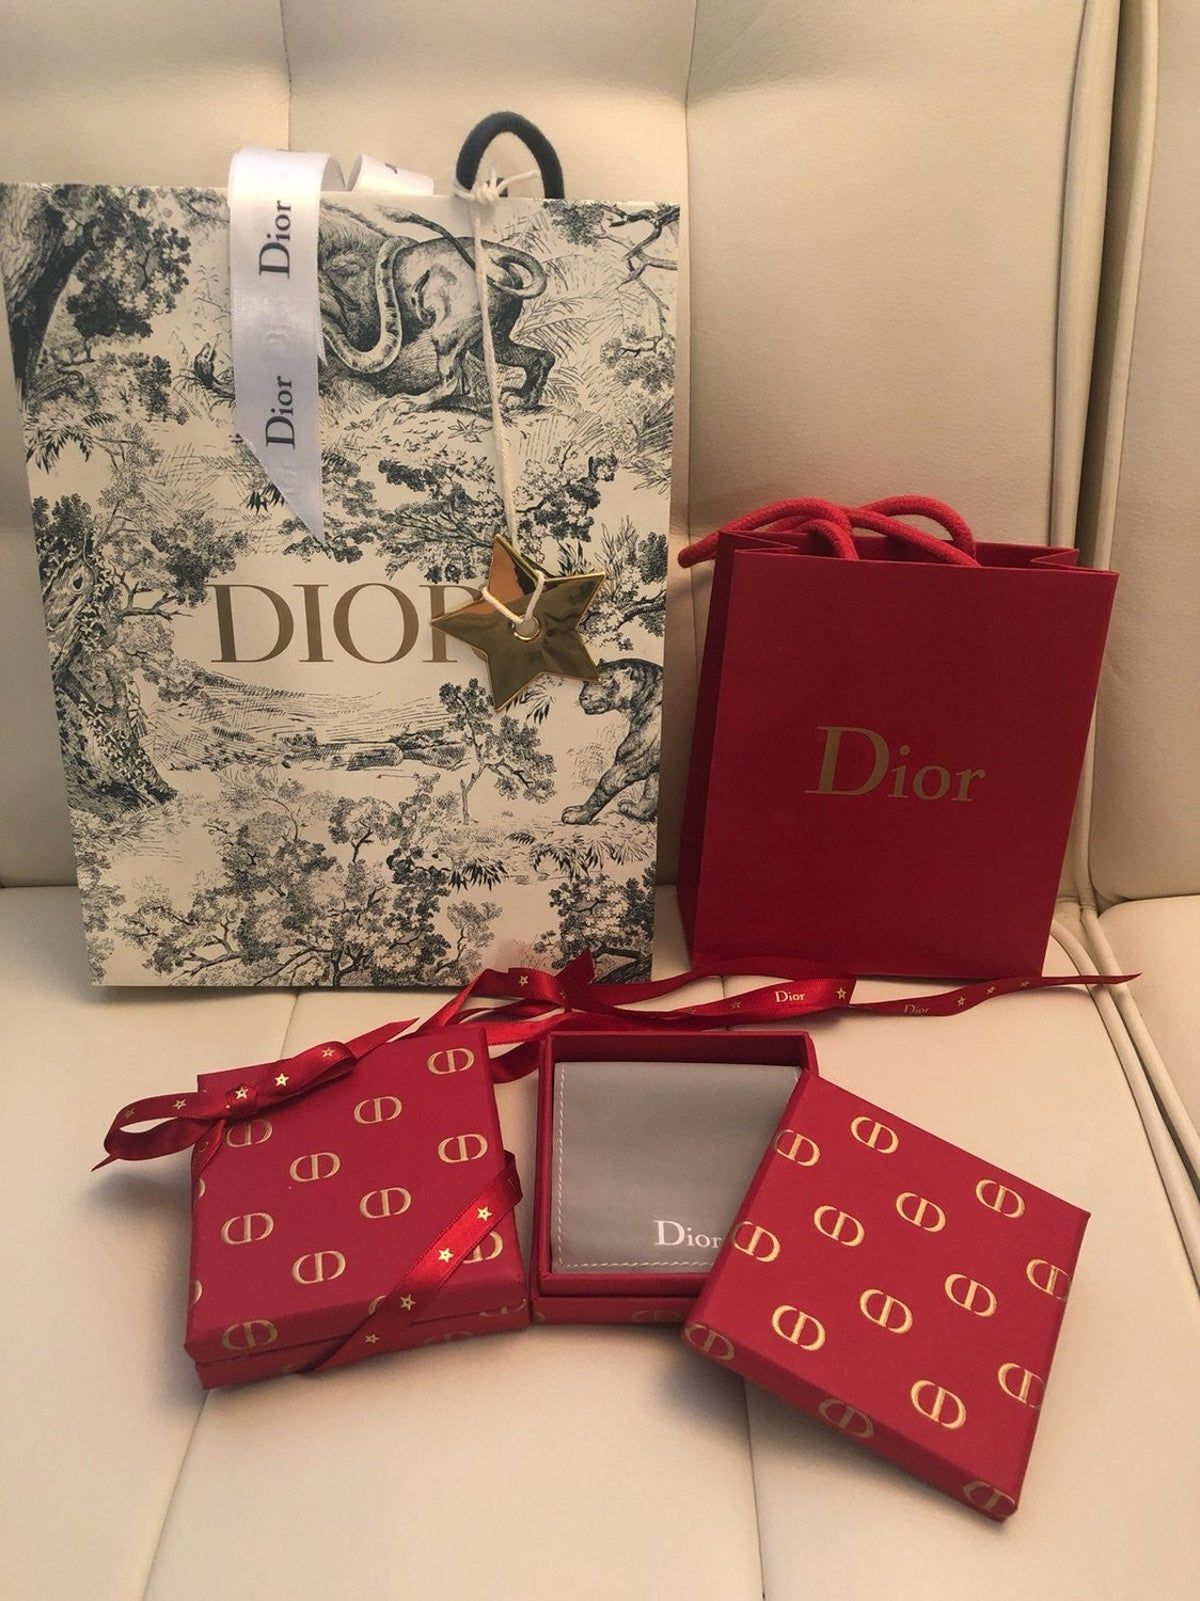 Dior Christmas Box 2020 Dior Gift Bags & Box on Mercari in 2020 | Branded gift bags, Gifts